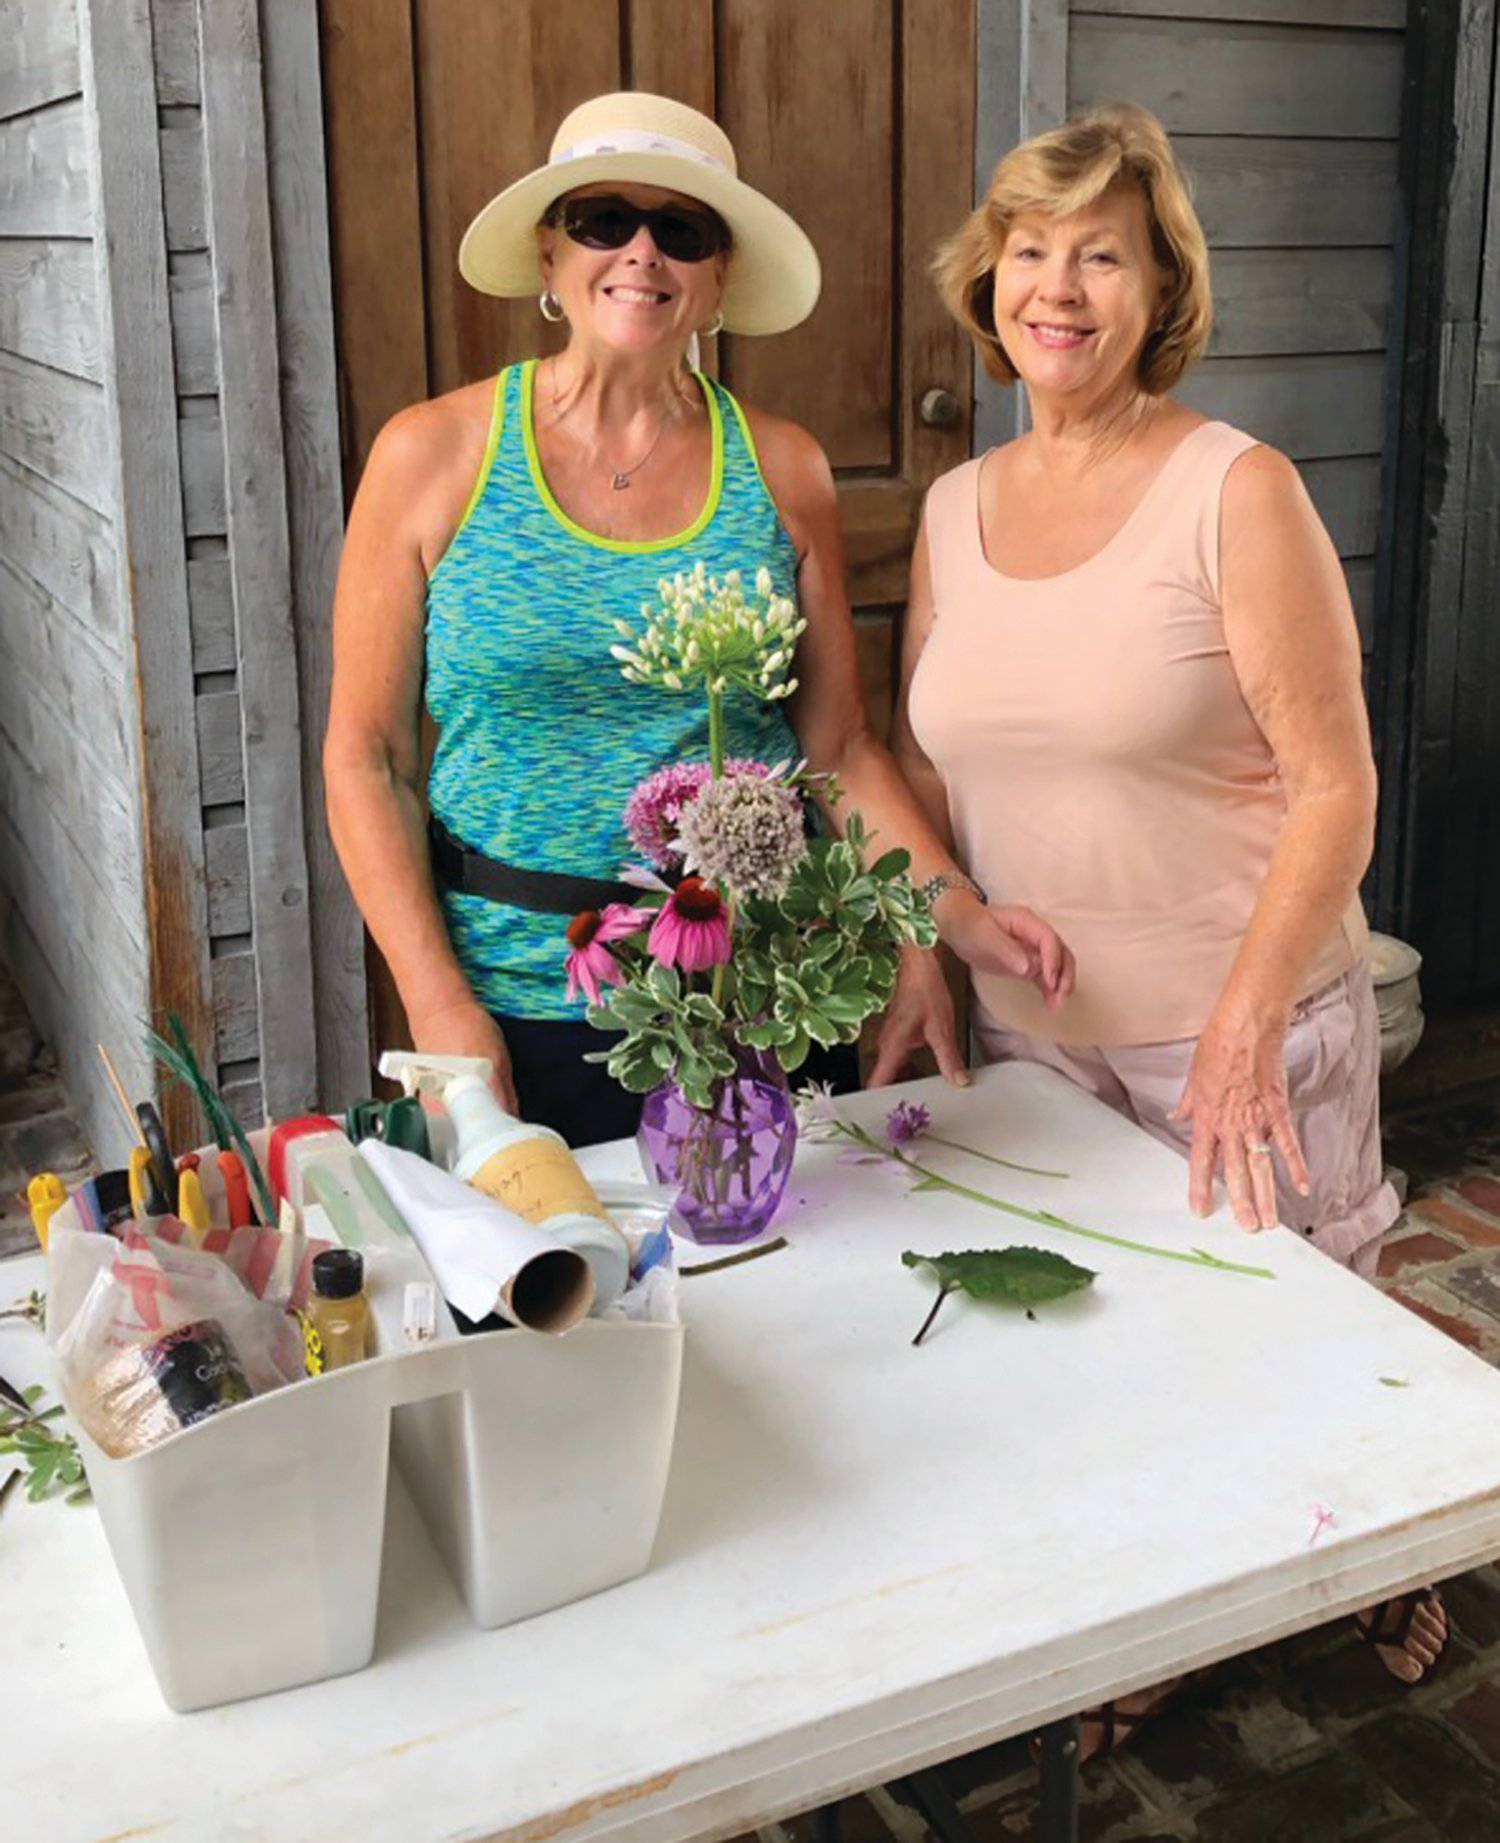 Arlene Ham and Deborah Vincent, members of the Azalea Garden Club, assisted in designing and preparing floral arrangements. The delivery is an annual community beautification project that the club hosts as part of National Garden Club Week.